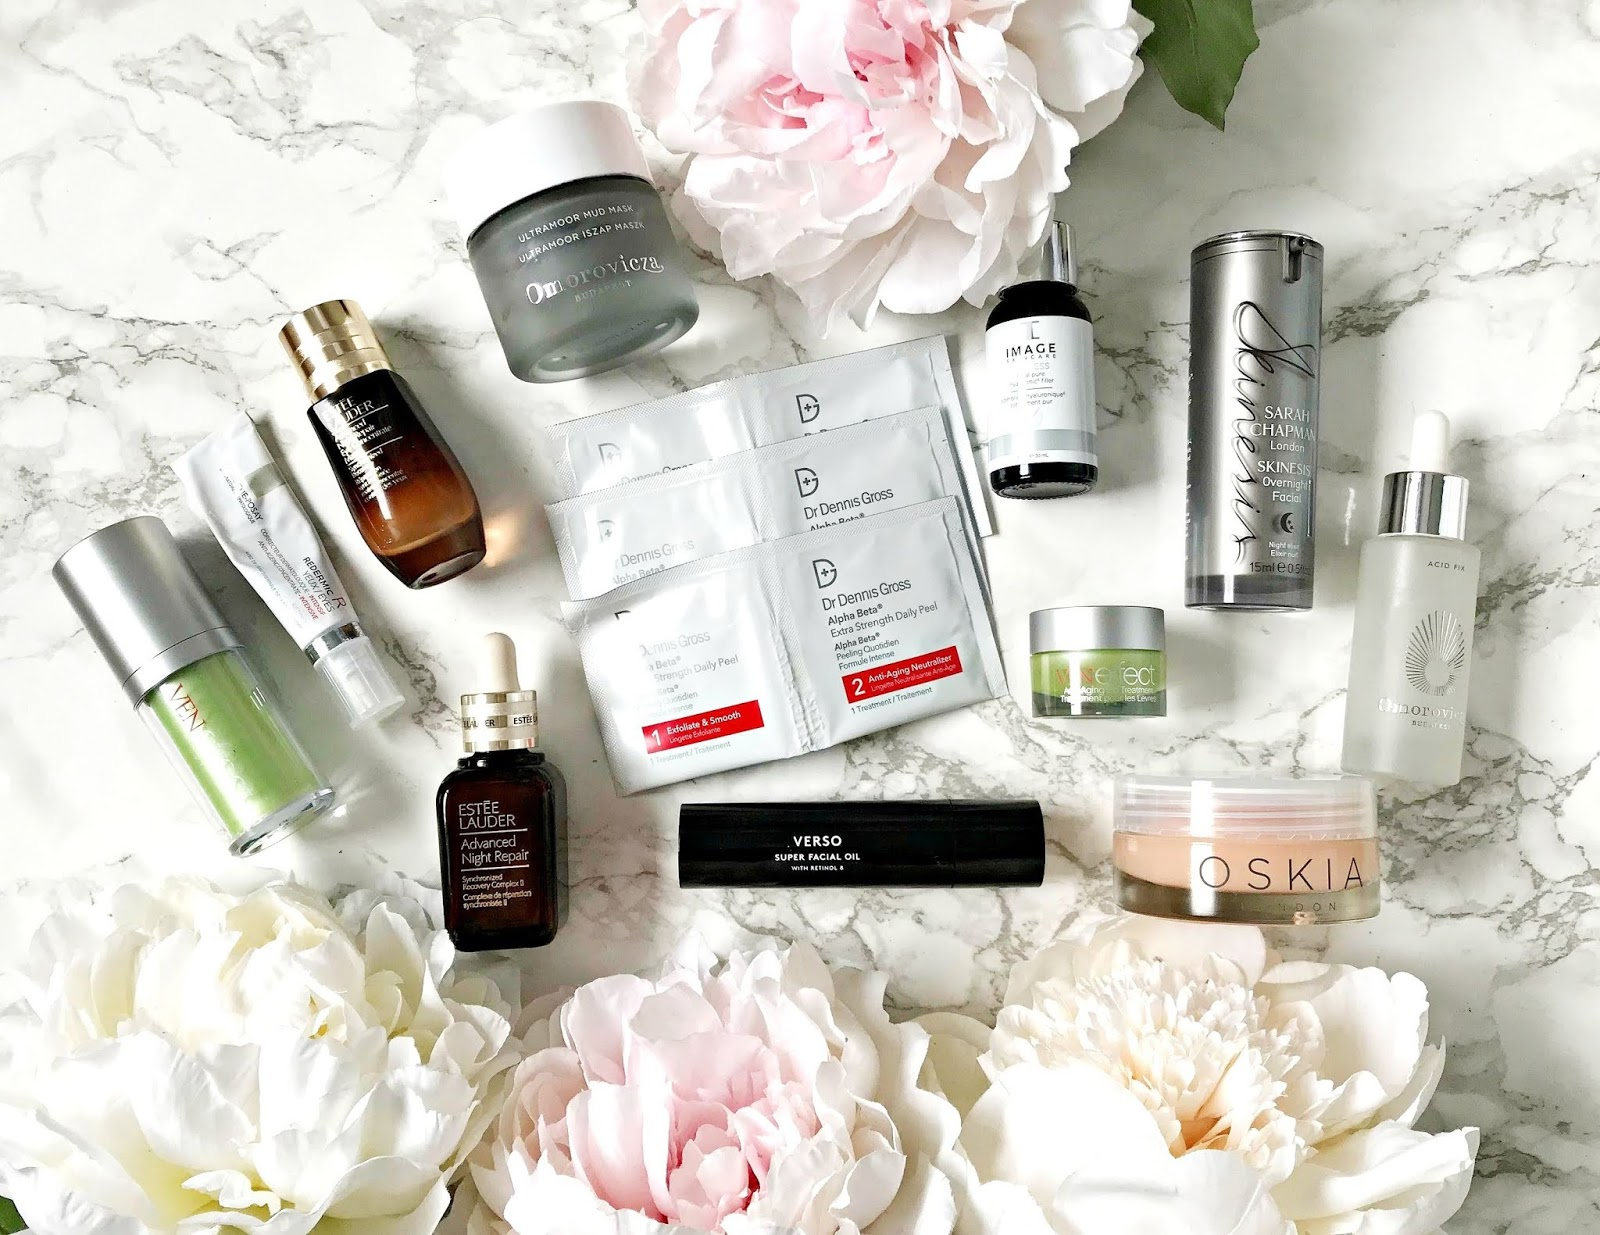 The best anti-ageing products